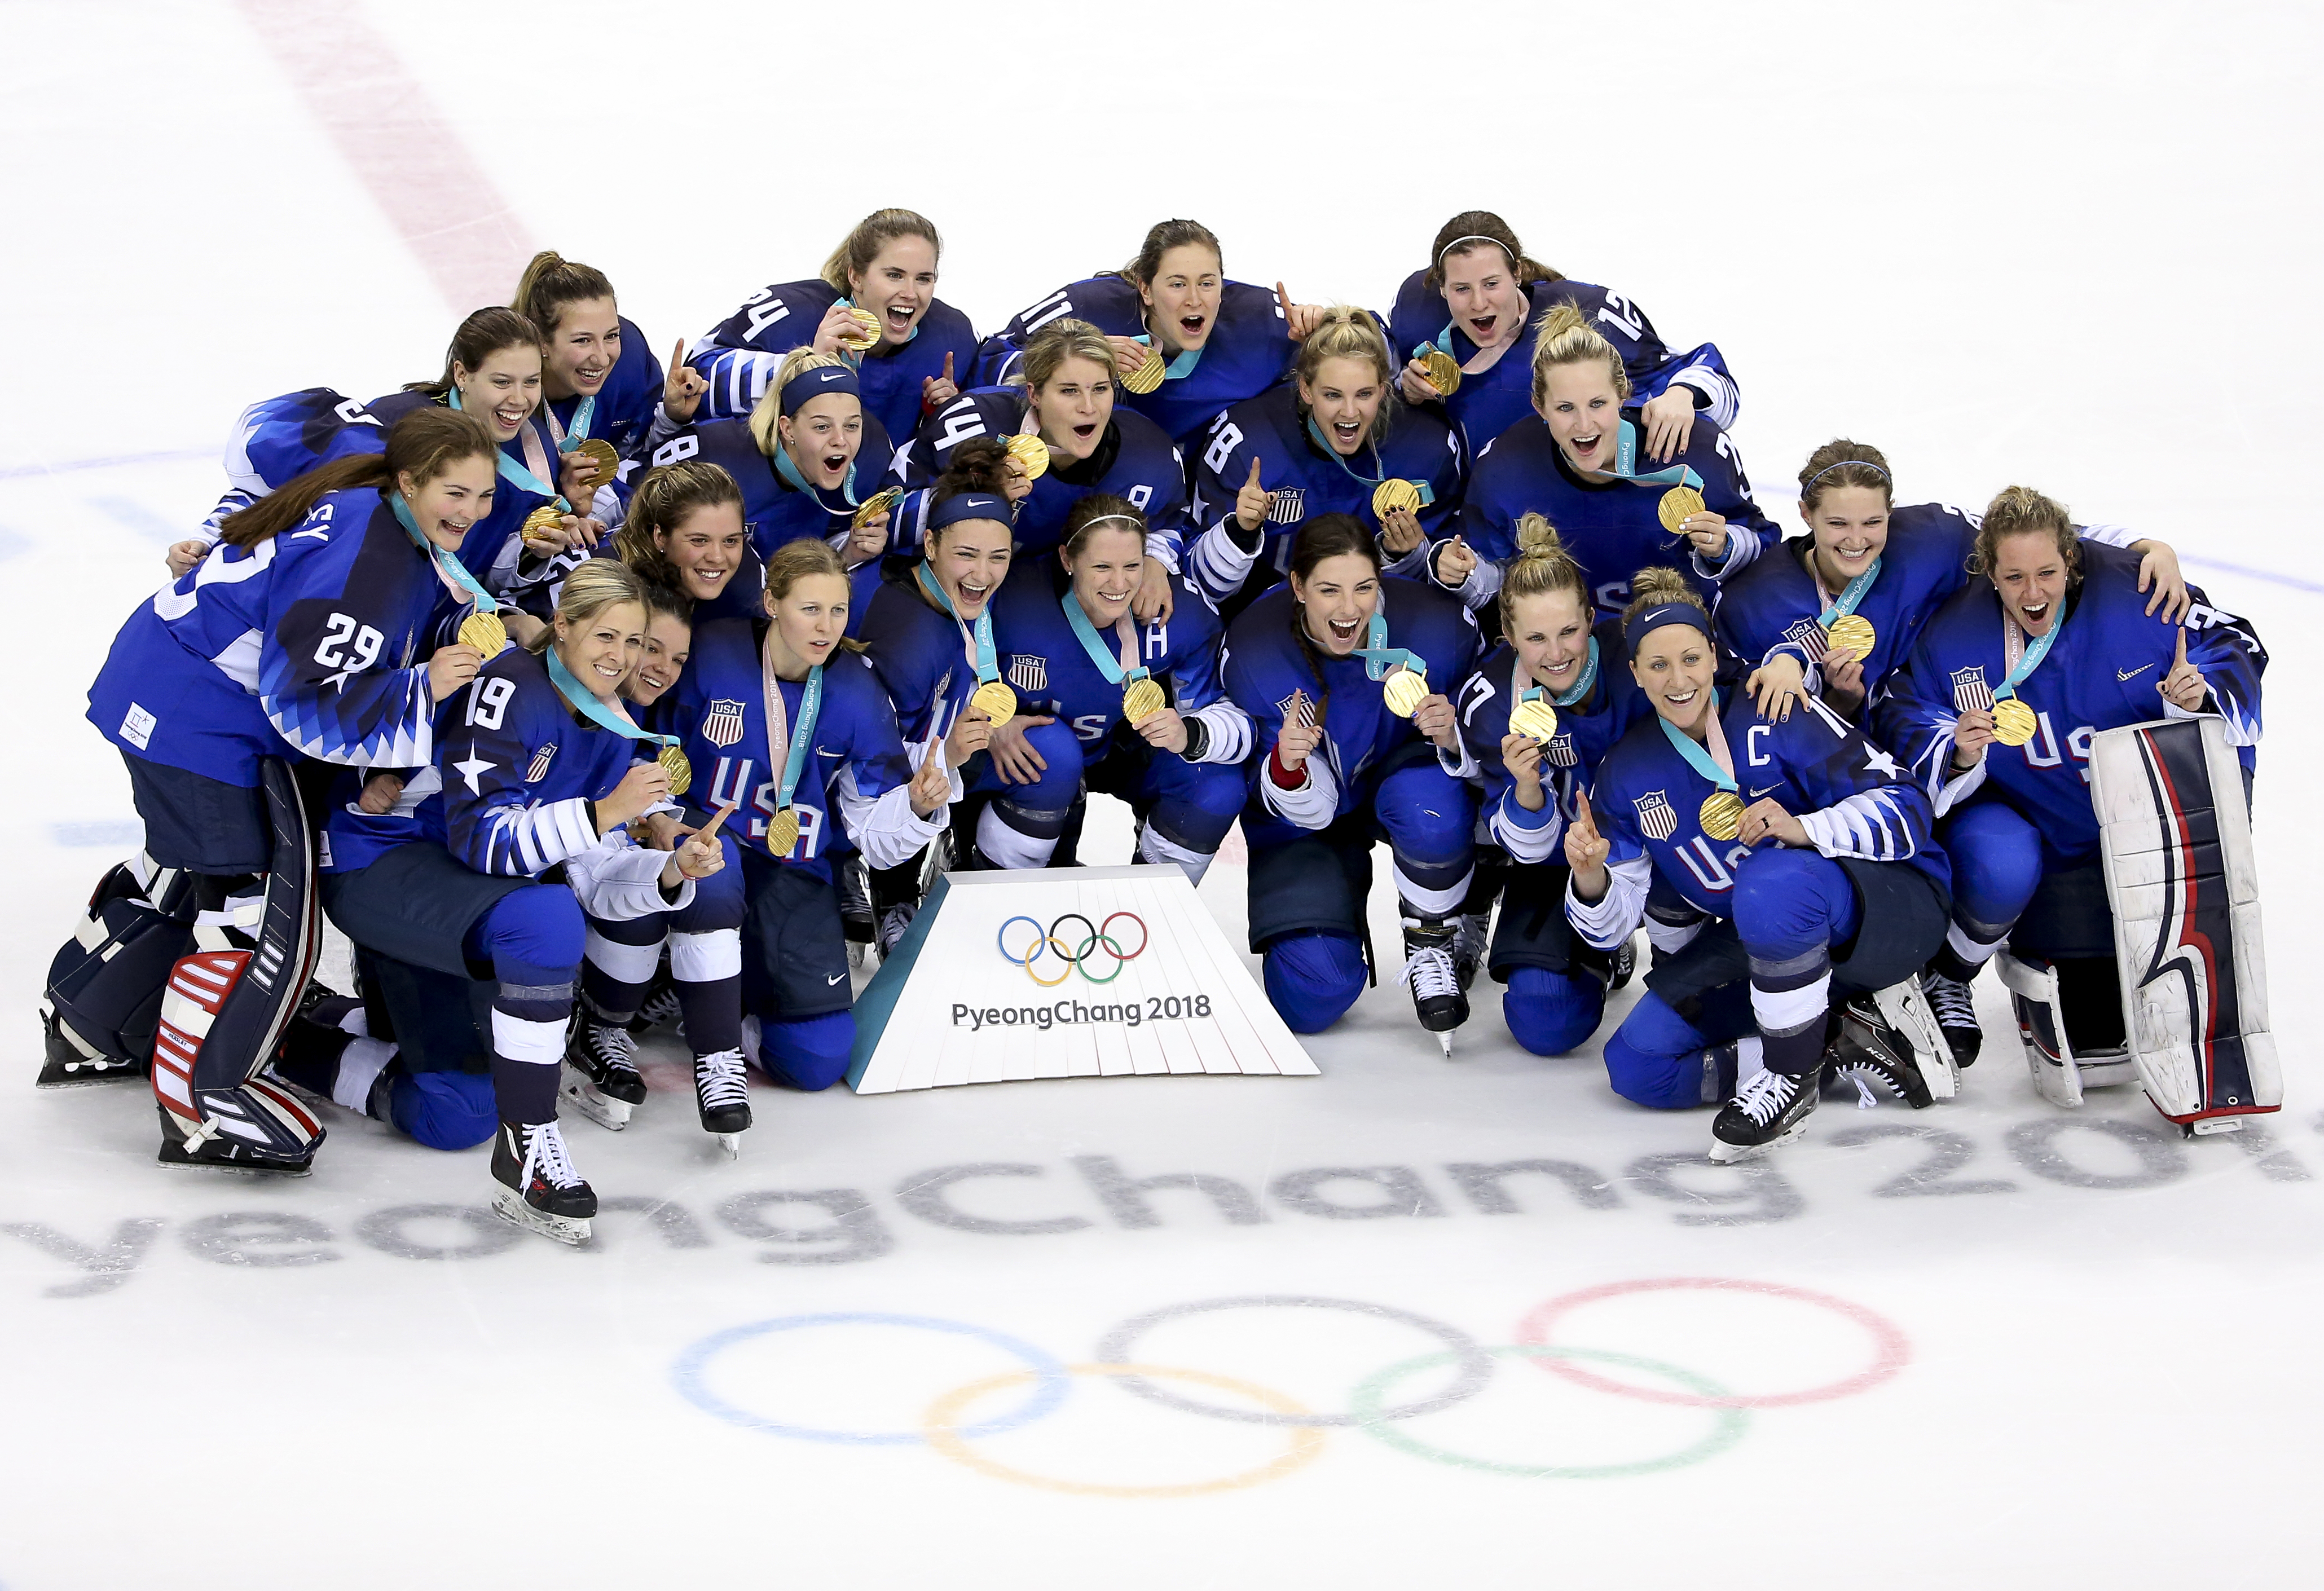 Before the USA Women's Hockey Team Clinched Gold, They Fought for Equal Pay